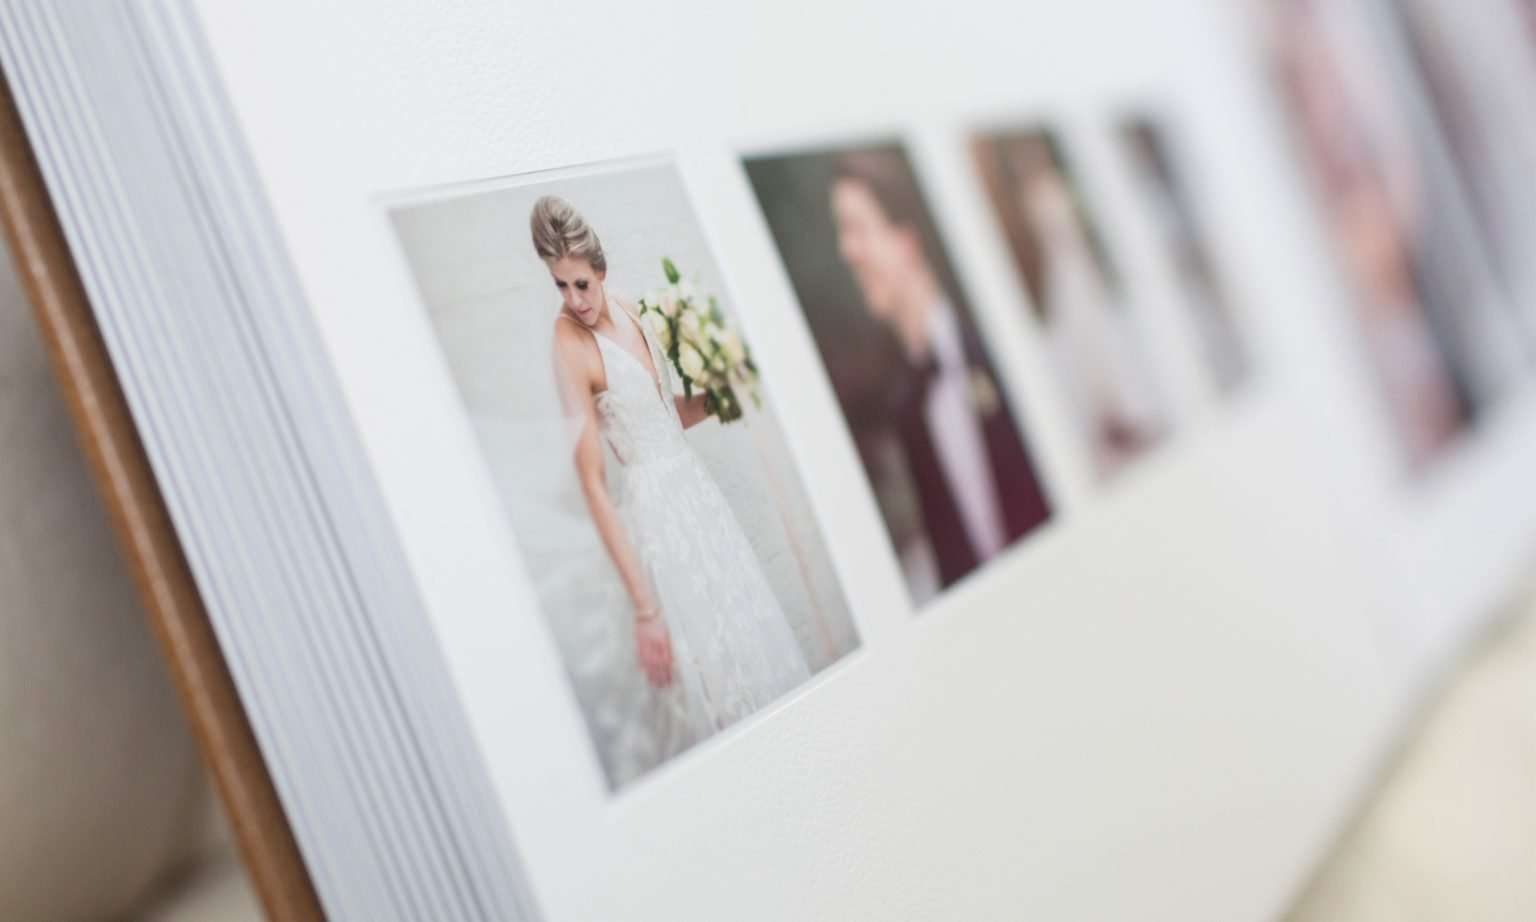 a close up detail image of pages in a wedding album